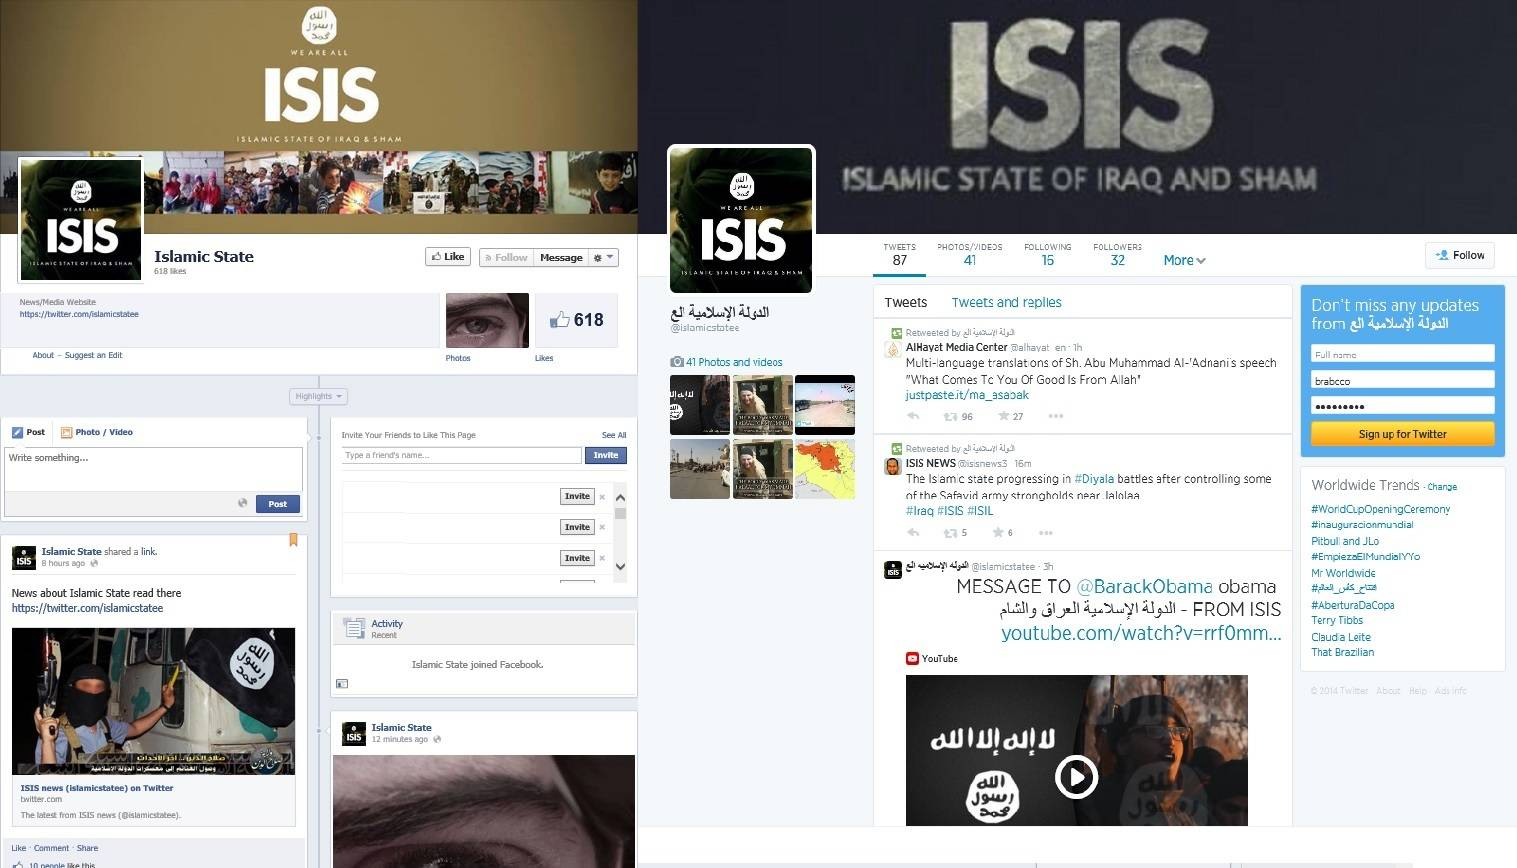 launch-of-isis-page-islamic-state